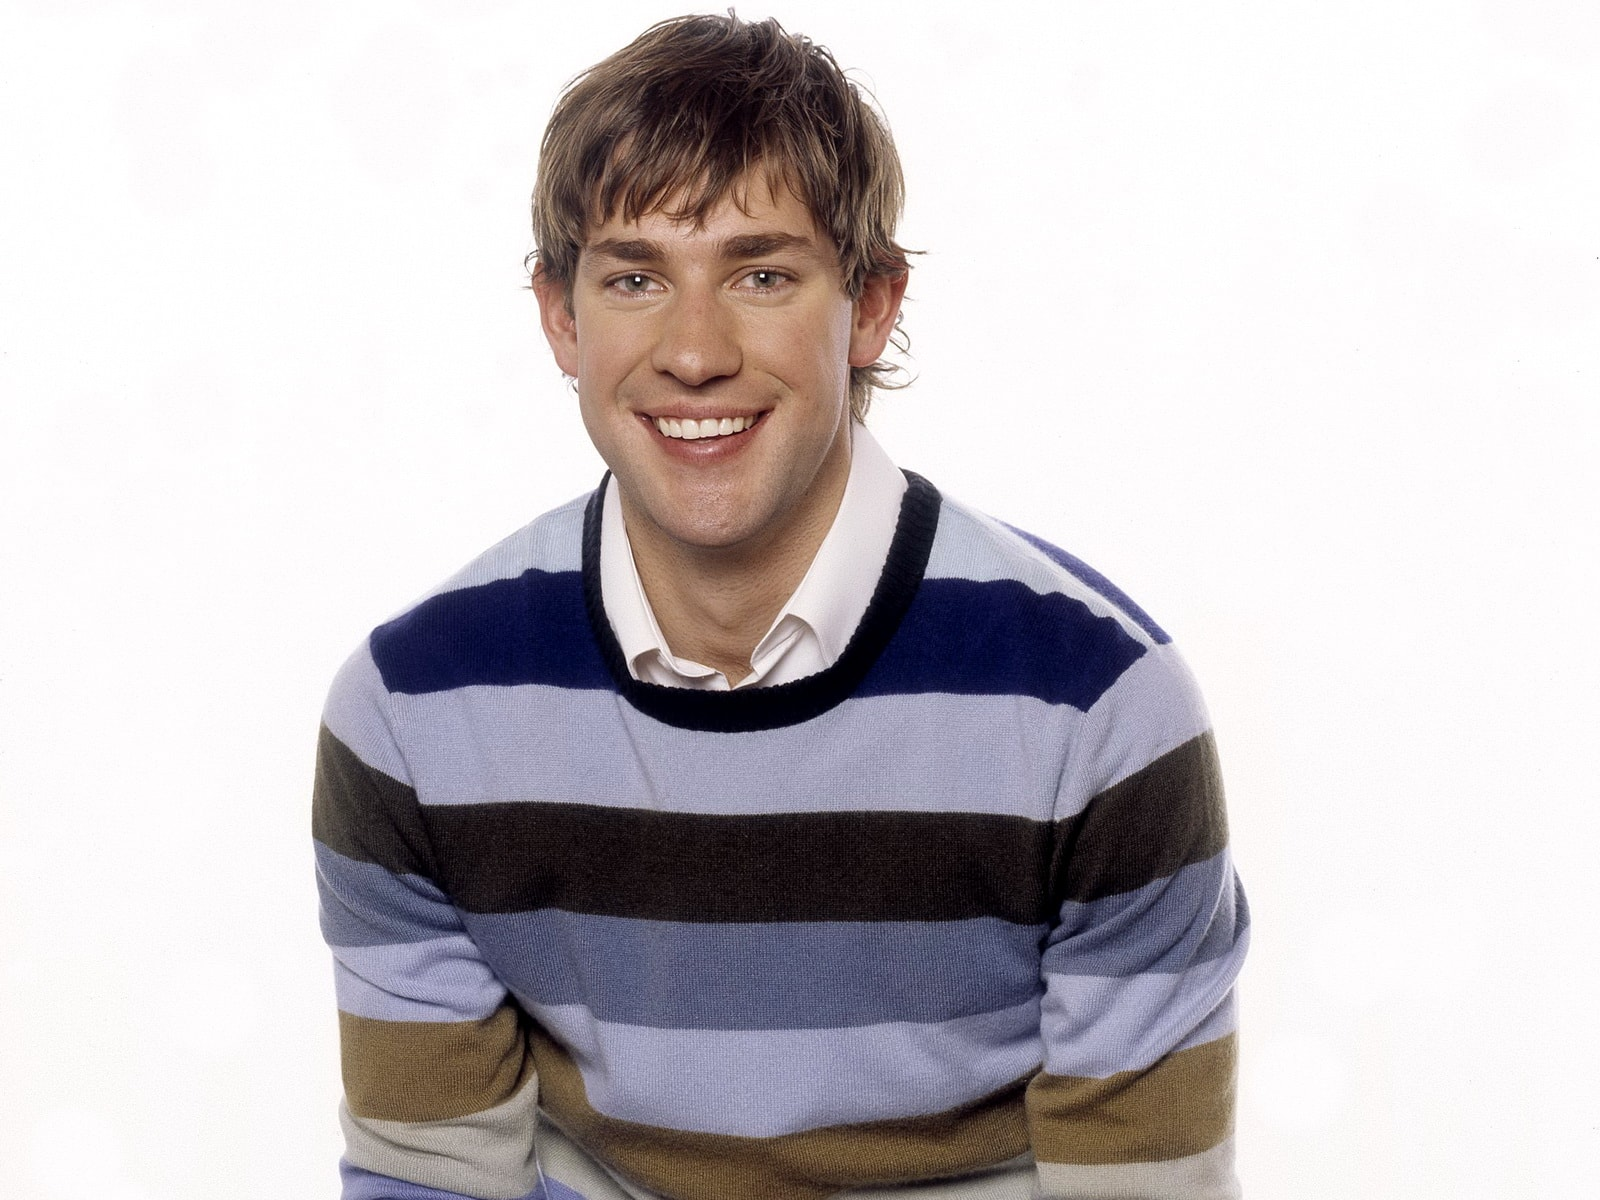 John Krasinski Background